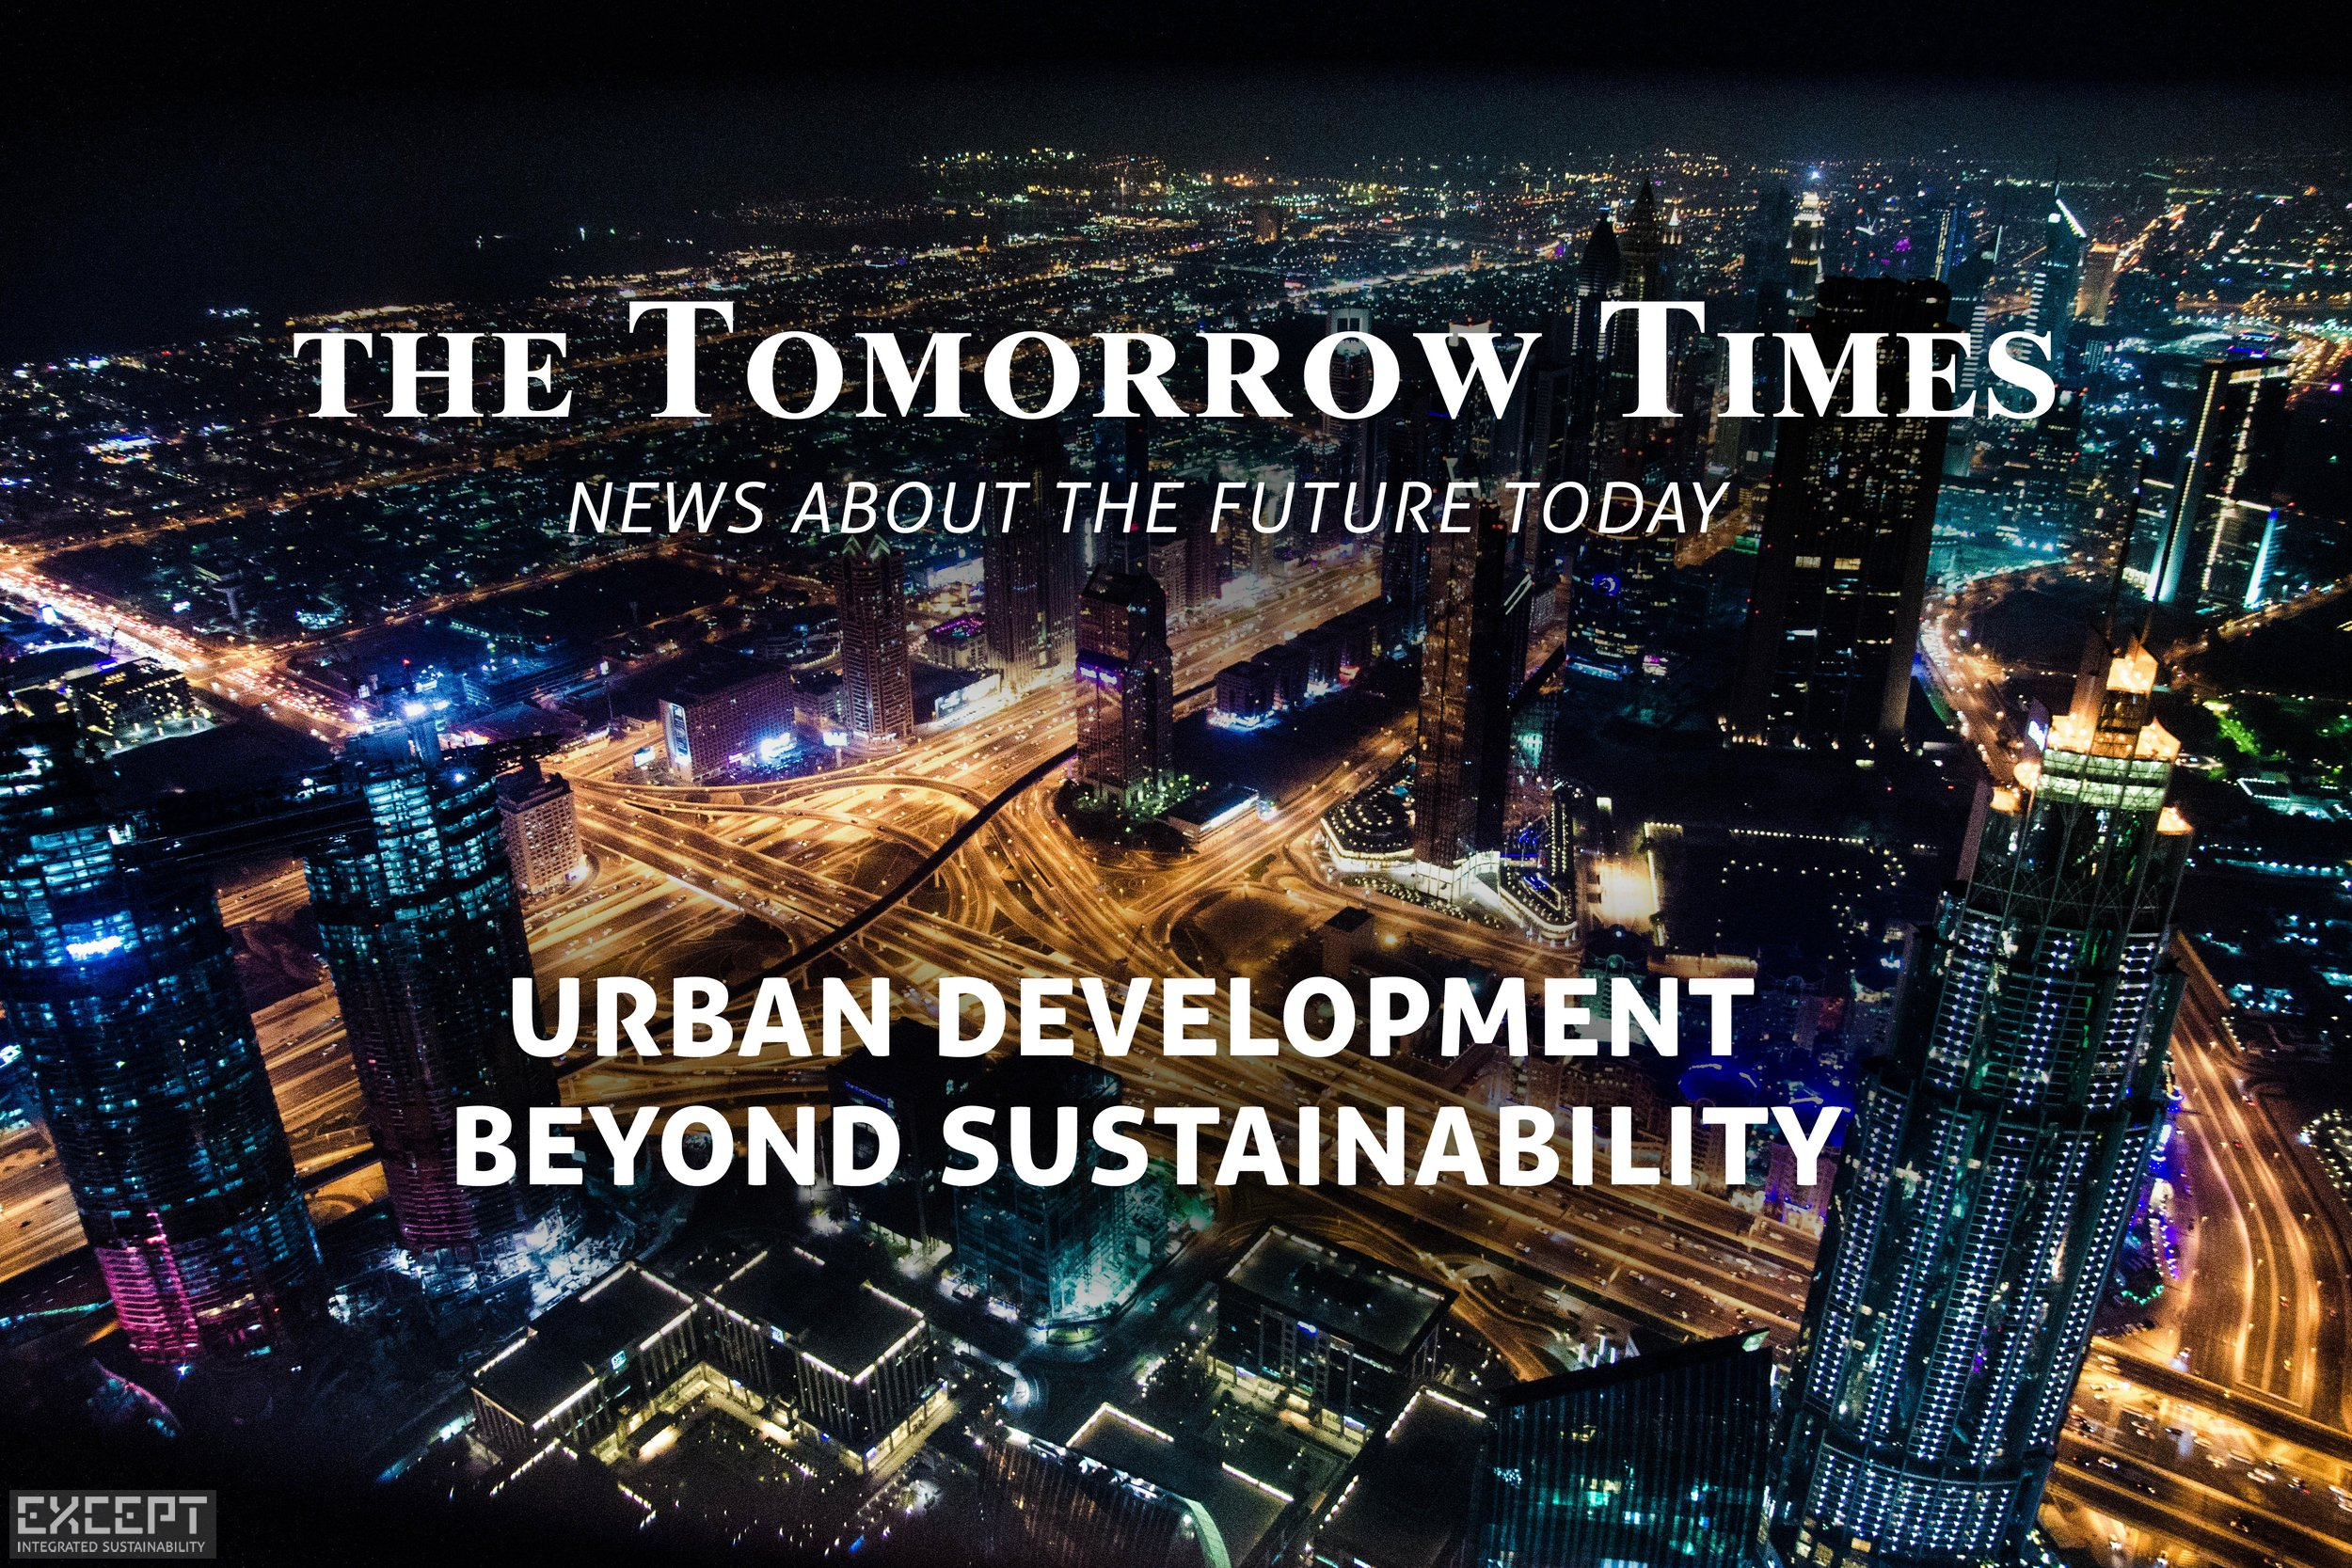 'The Tomorrow Times' - Jan '19: Urban Development - ASSET IMAGE -